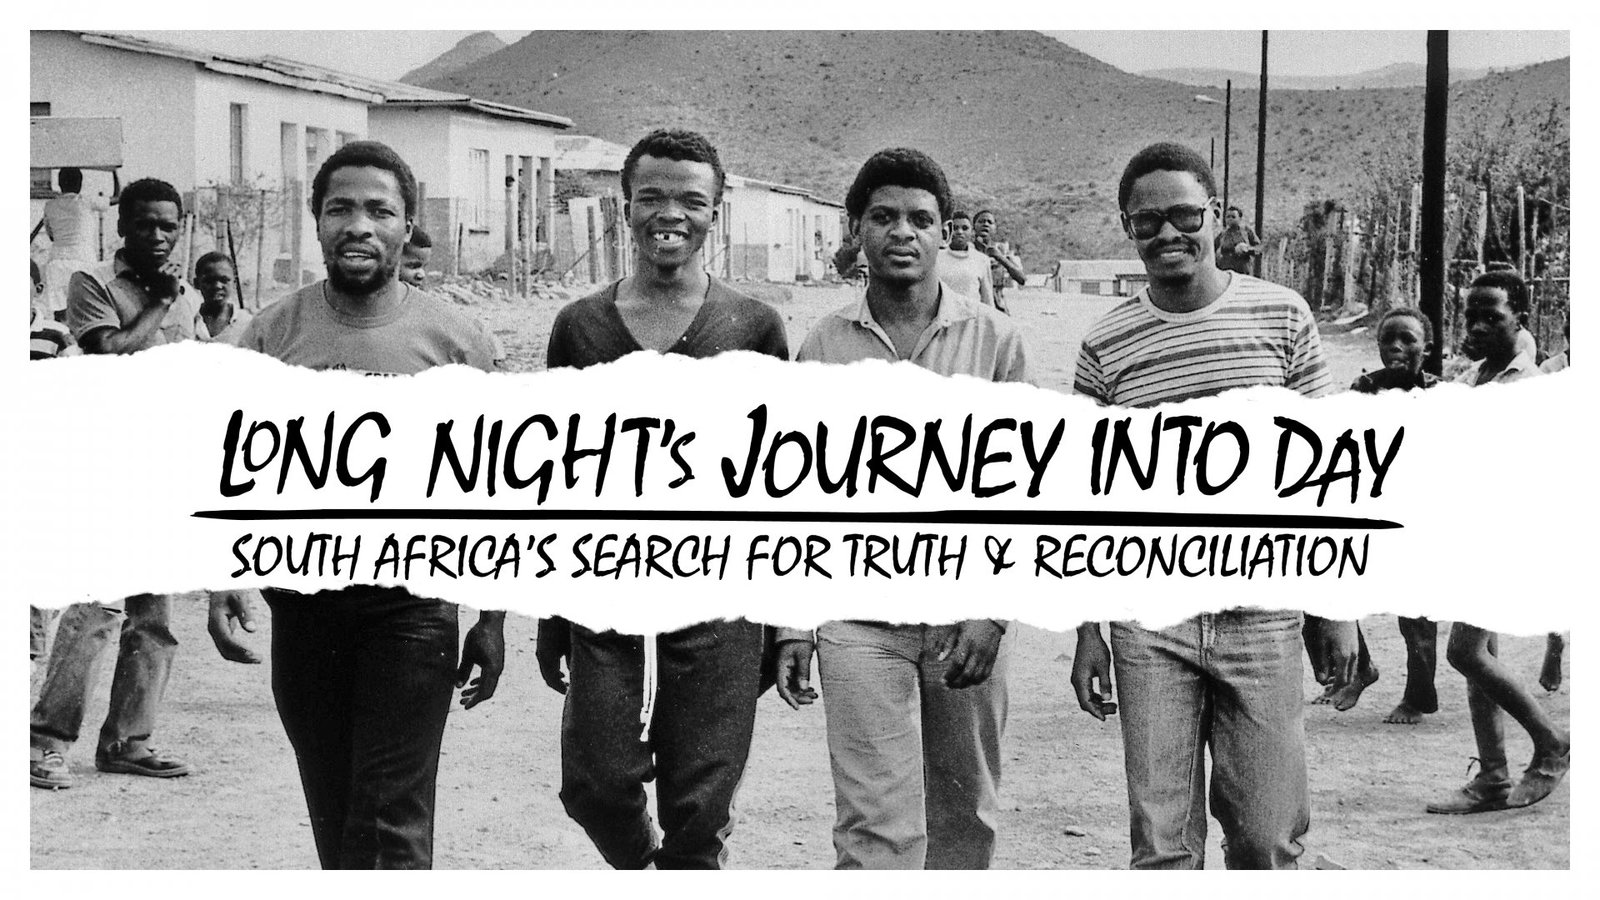 Frances Reid's documentary about South Africa's Truth and Reconciliation Commission,Long Night's Journey Into Day